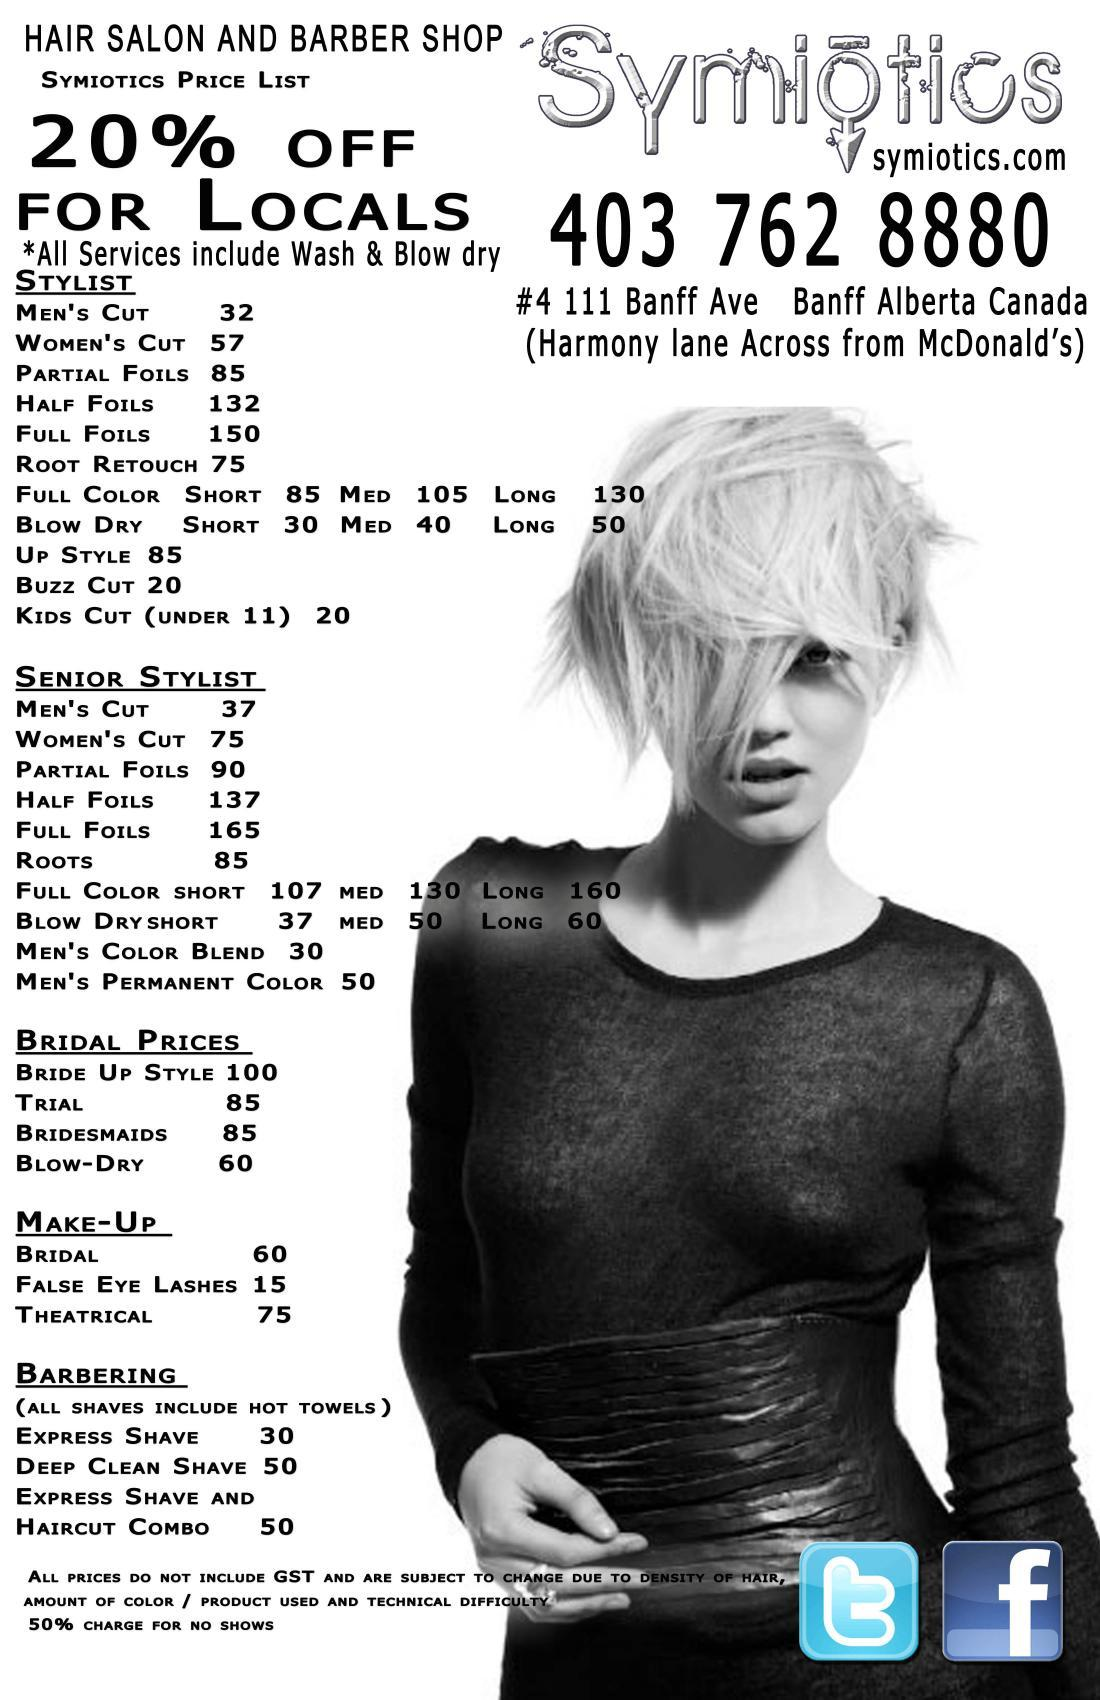 Banff Hair Salon Barber Symiotics Pricelist 2017 Ch 1531 Jpg Home Price List